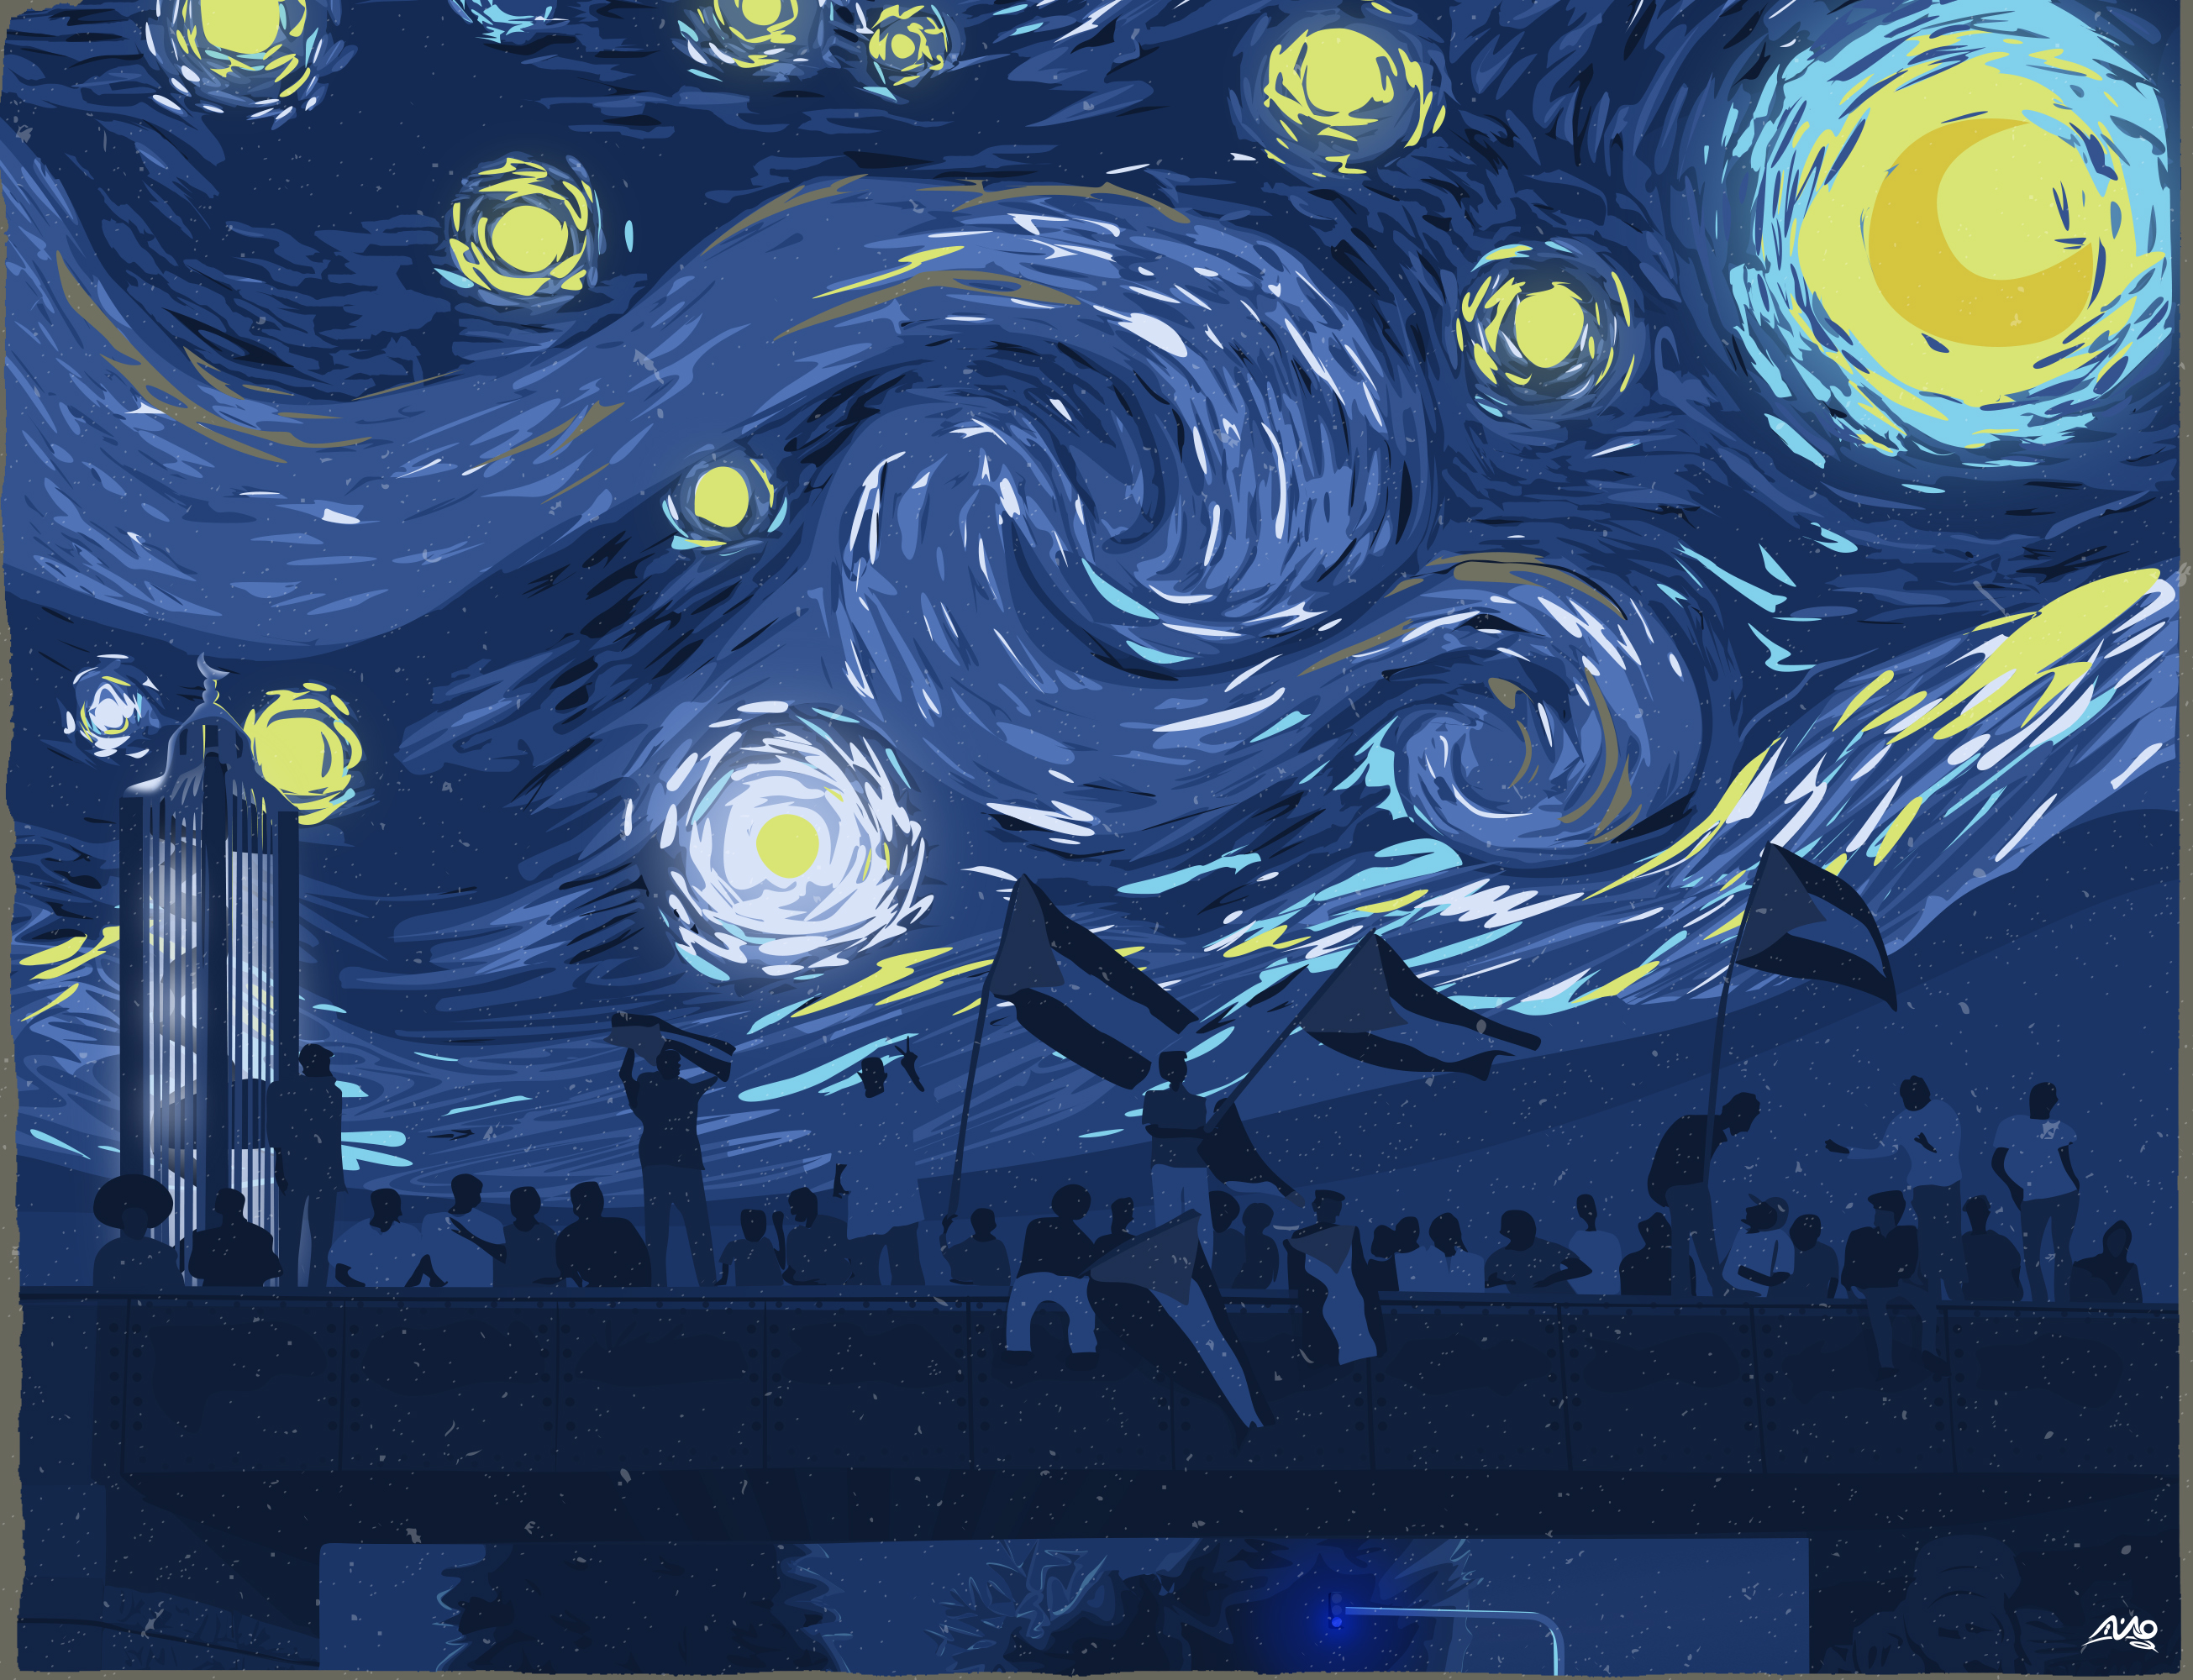 Blue Night - Sudanese protesters overlayed with Van Gogh's Starry Night